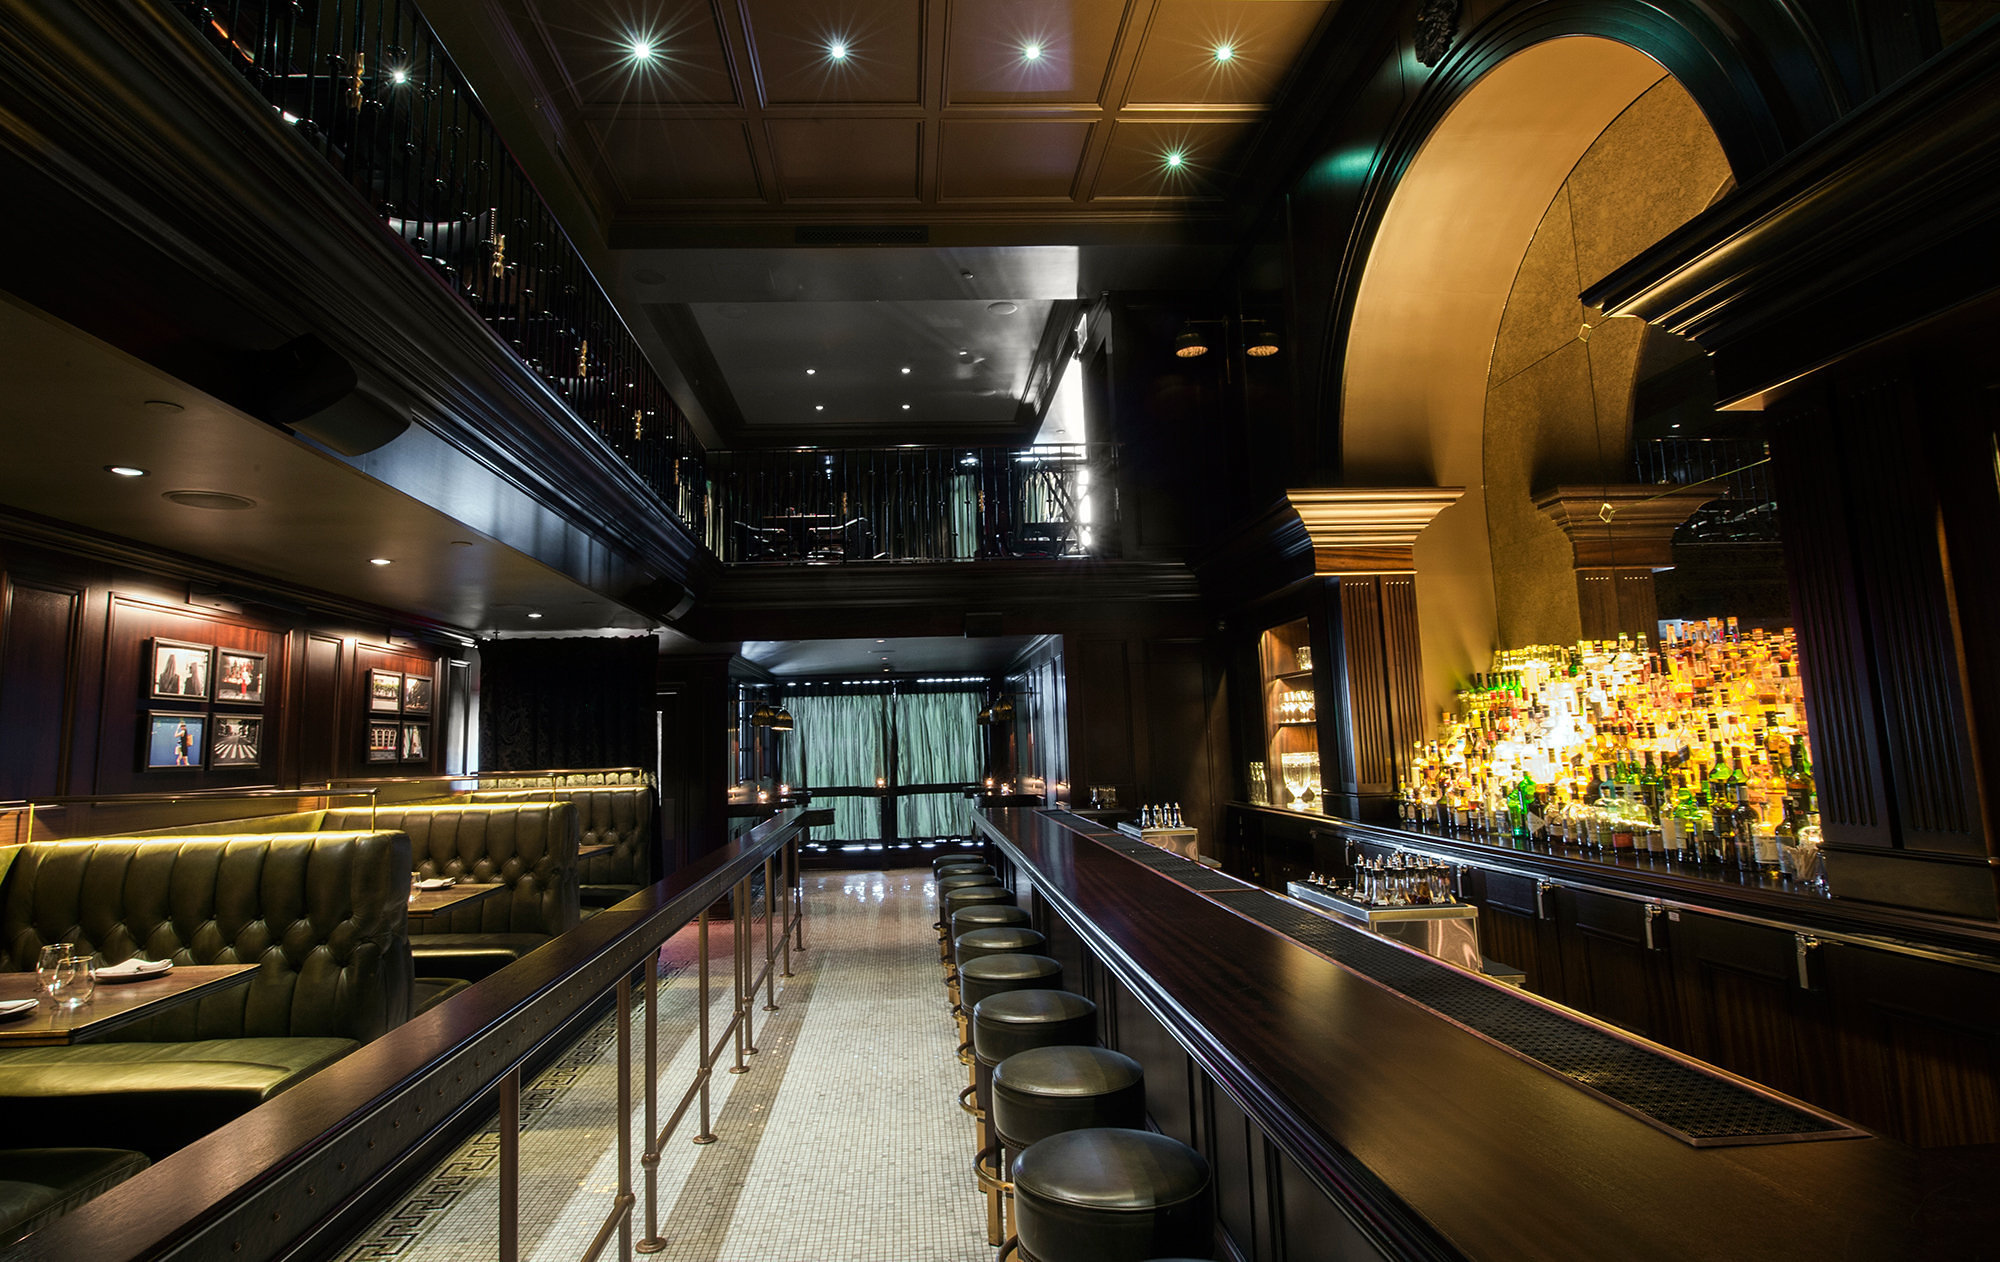 http://www.bartales.it/sites/default/files/nomad-bar-new-york-city.jpg